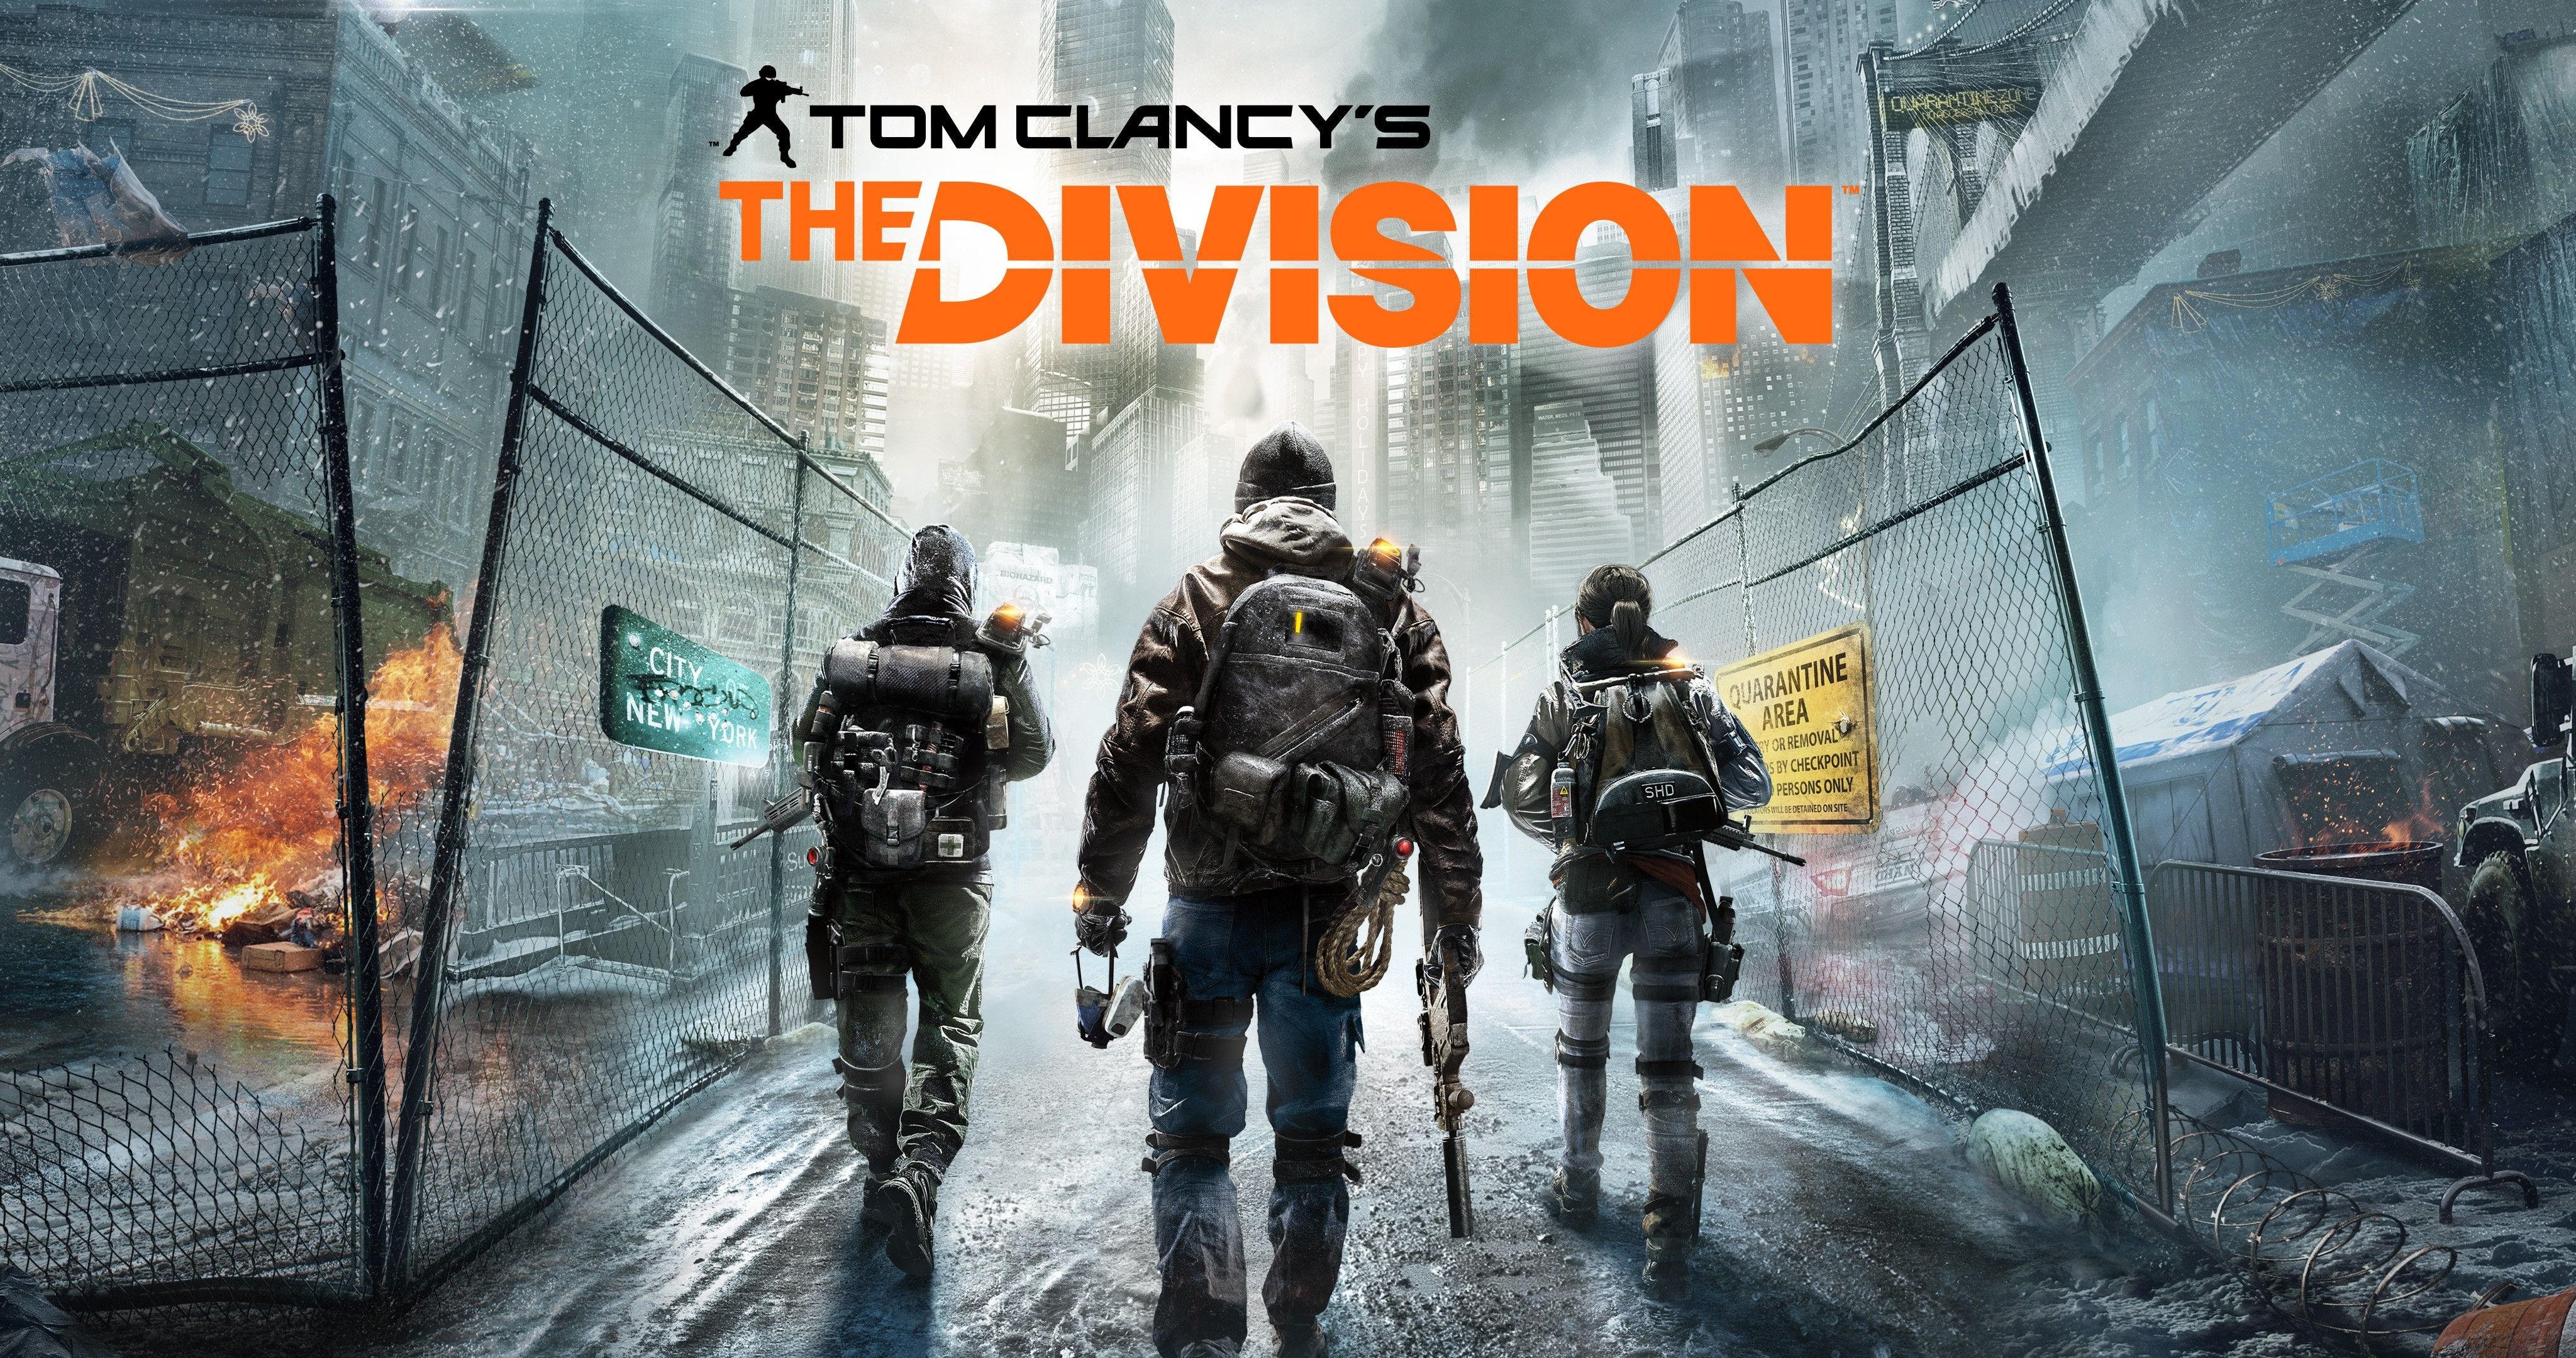 The Division 4k Wallpapers Top Free The Division 4k Backgrounds